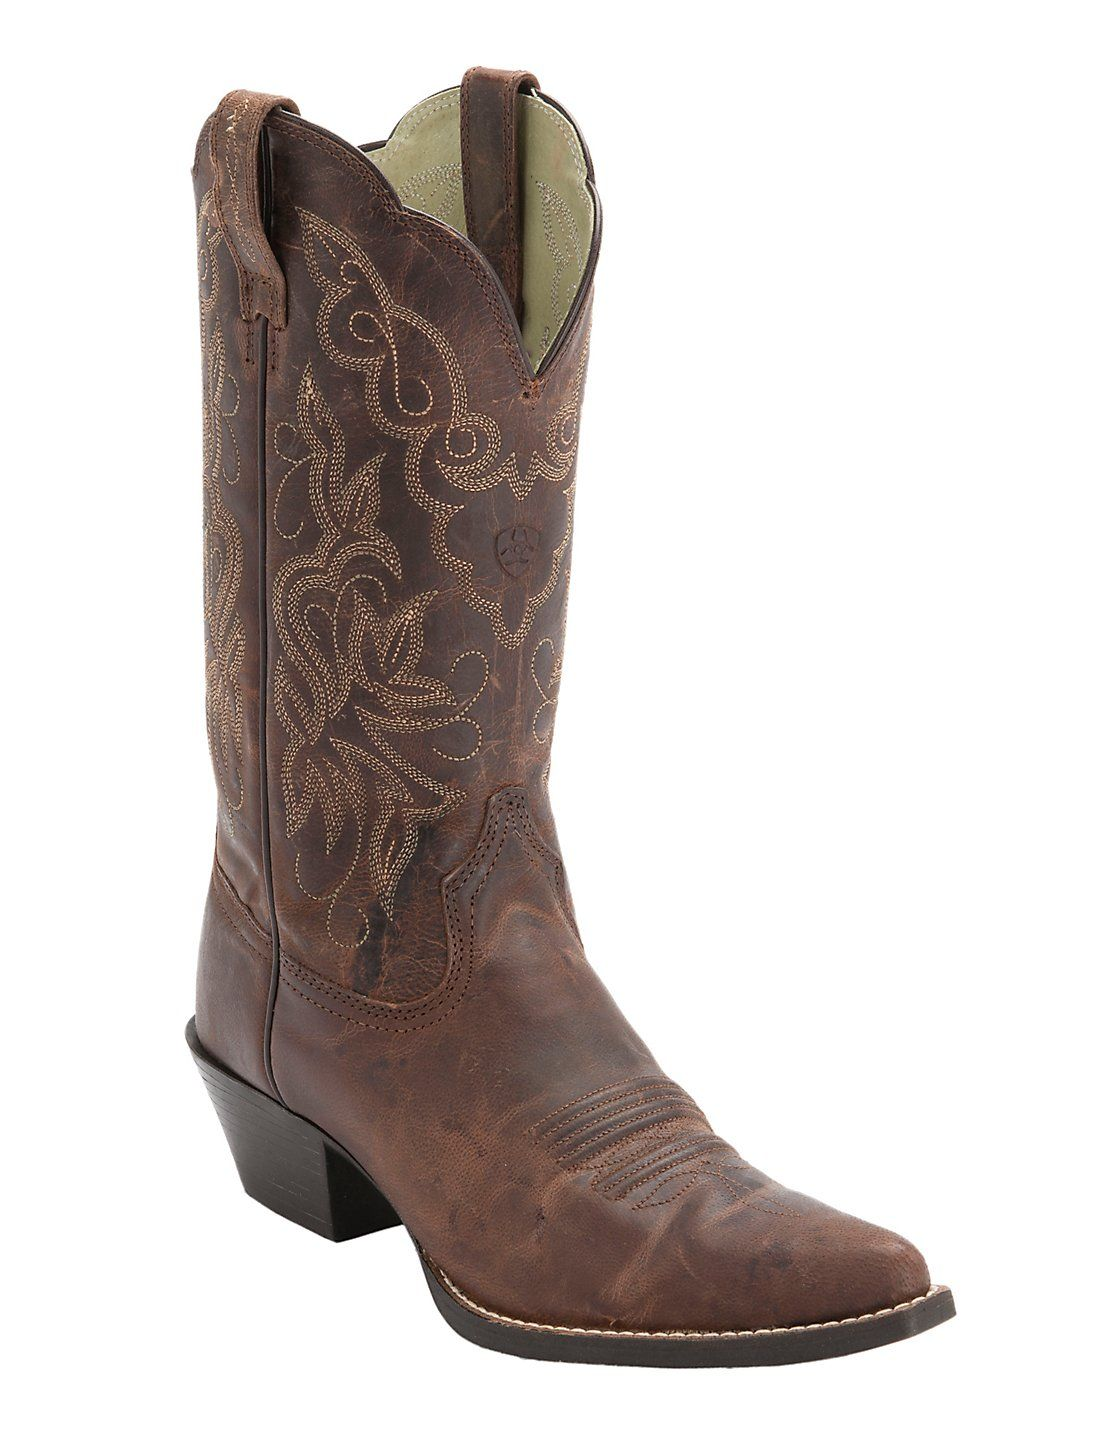 Ariat Heritage Cowgirl Boots - Pointed Toe | Fashion | Pinterest ...